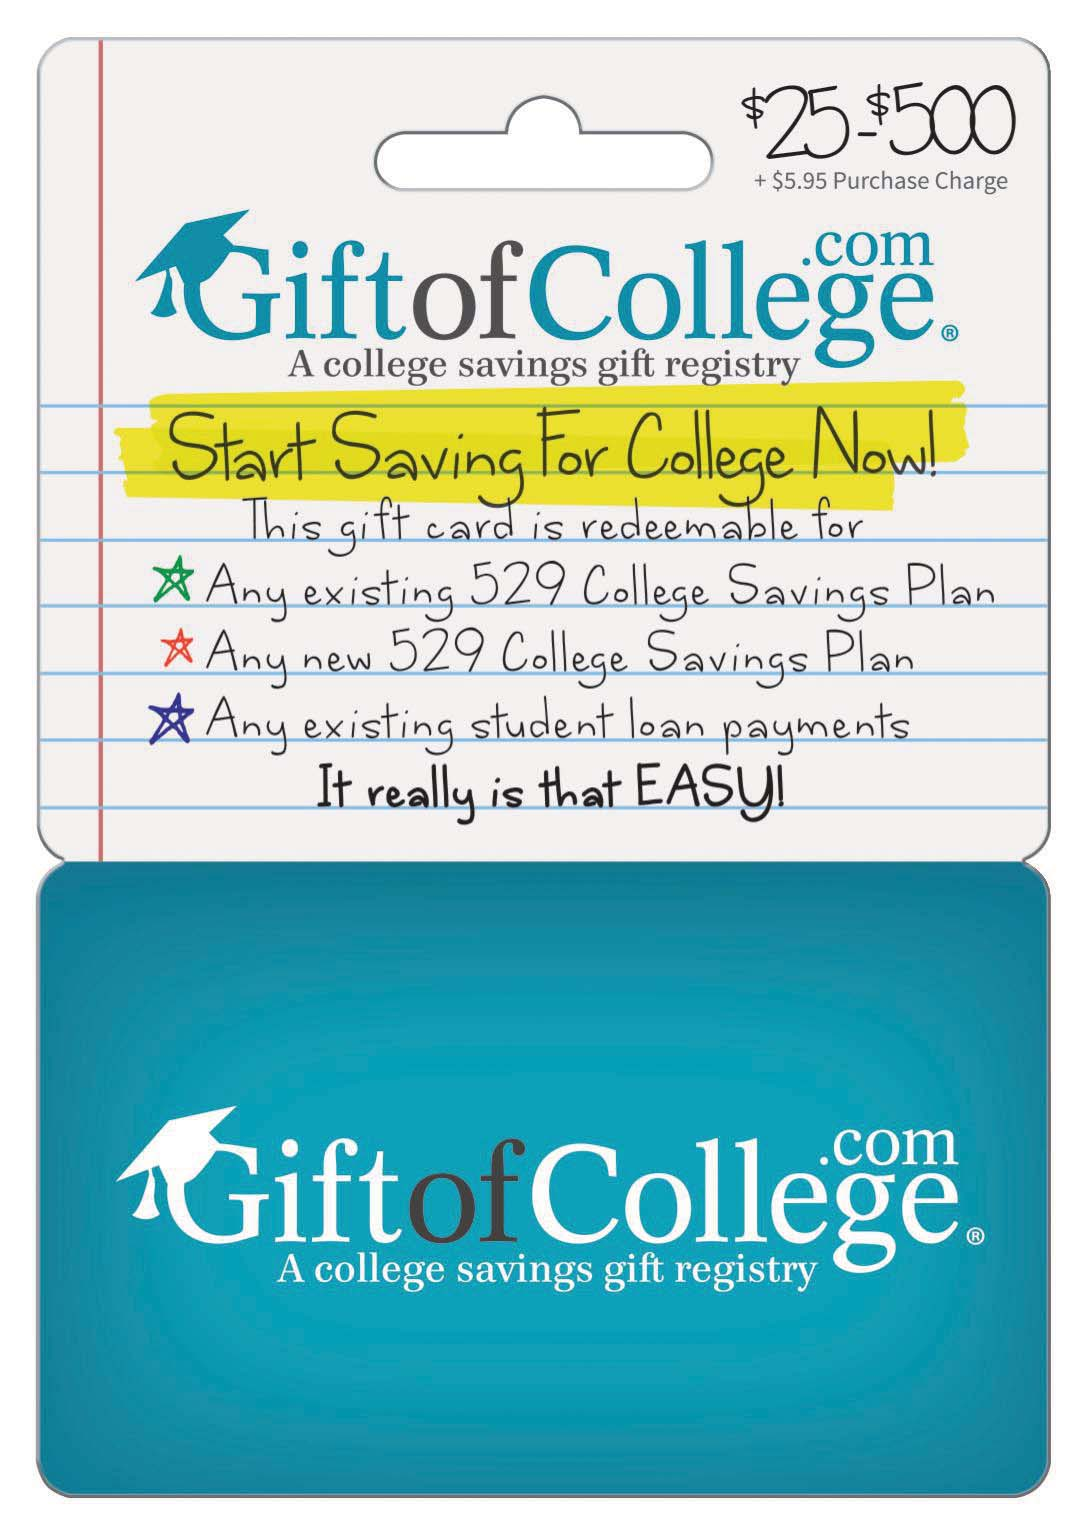 InComm Launches Distribution of Gift of College Gift Cards at Toys ...